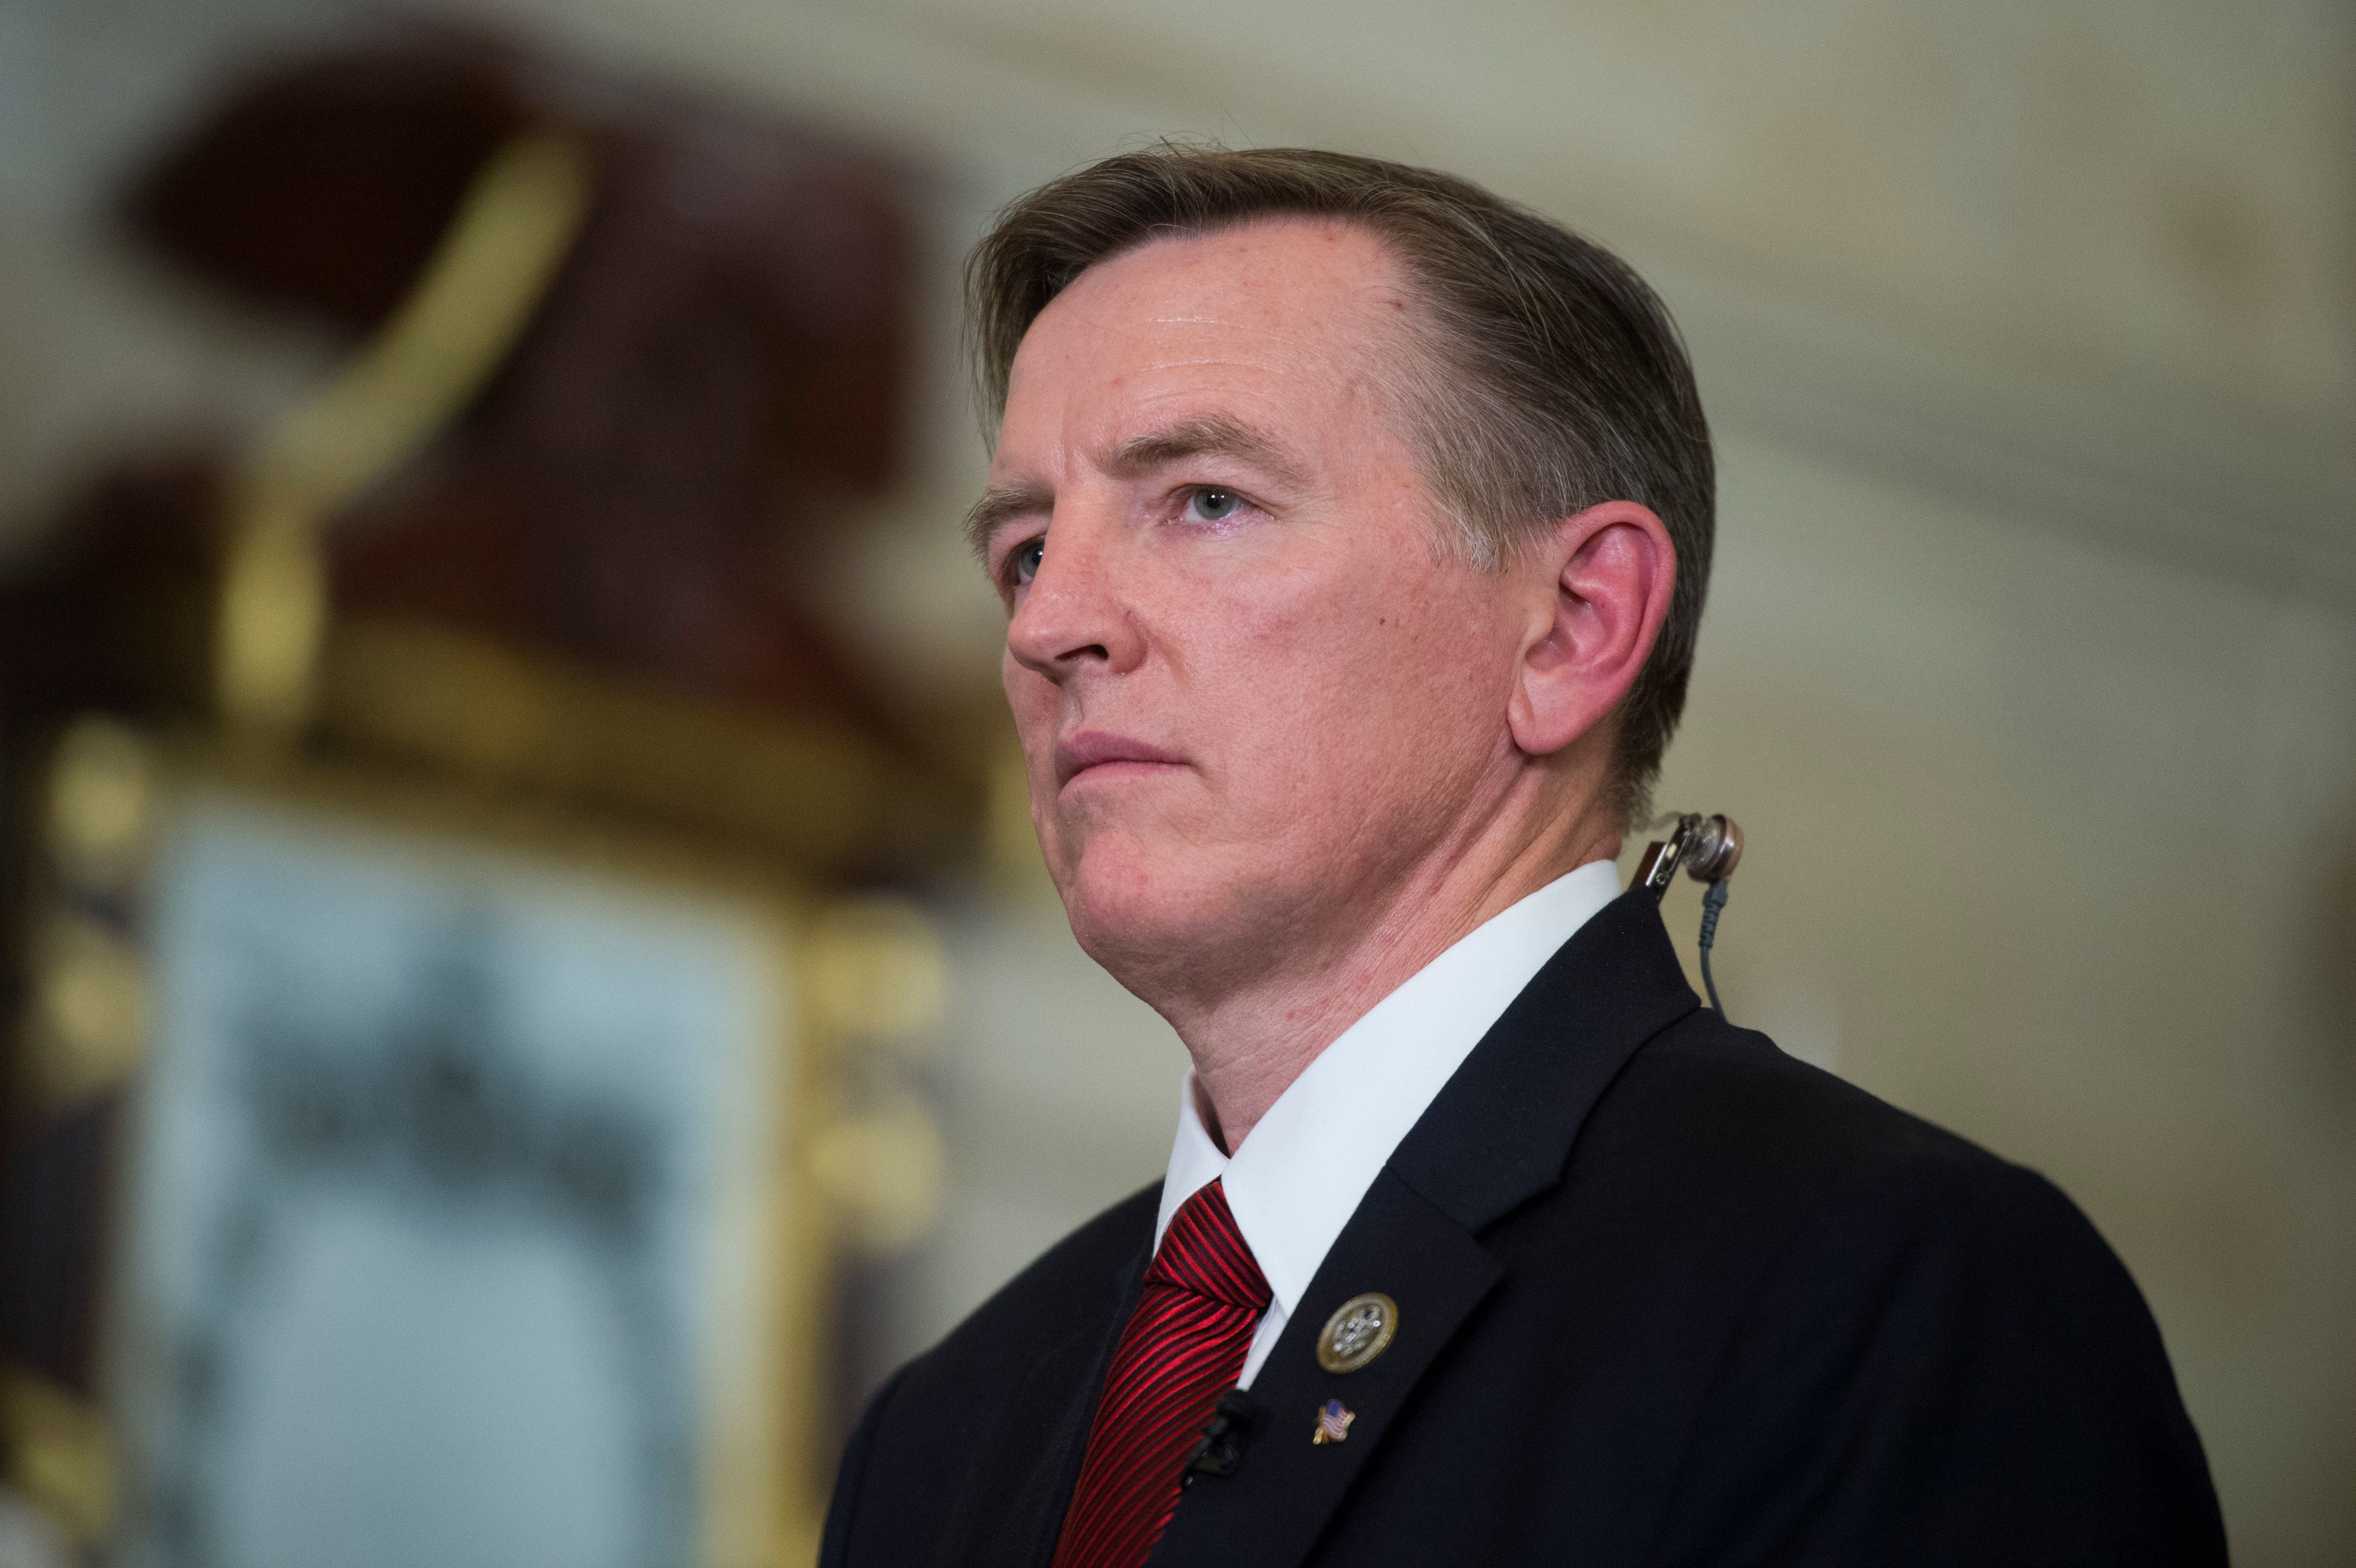 Six of Rep. Paul Gosar's 10 siblings appeared in attack ads supporting his opponent